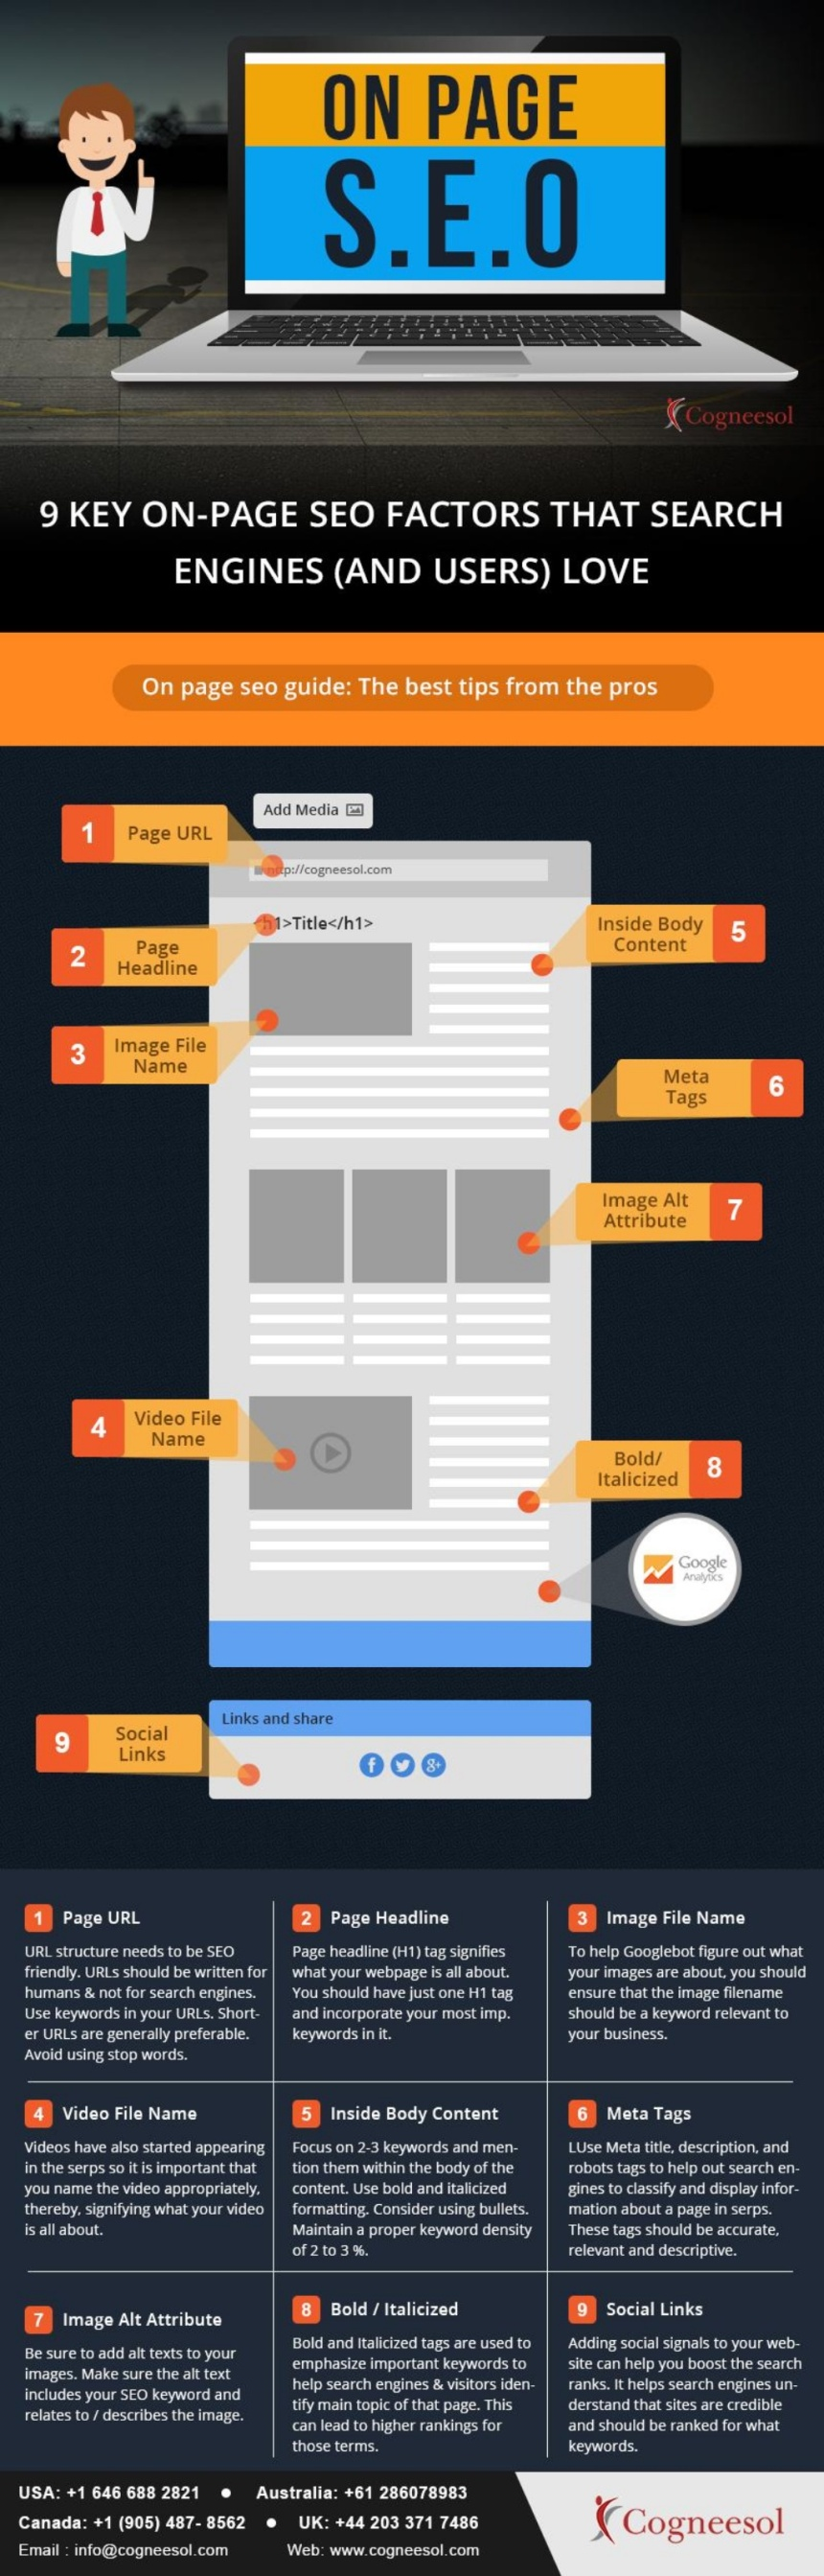 9 factores clave del SEO On Page